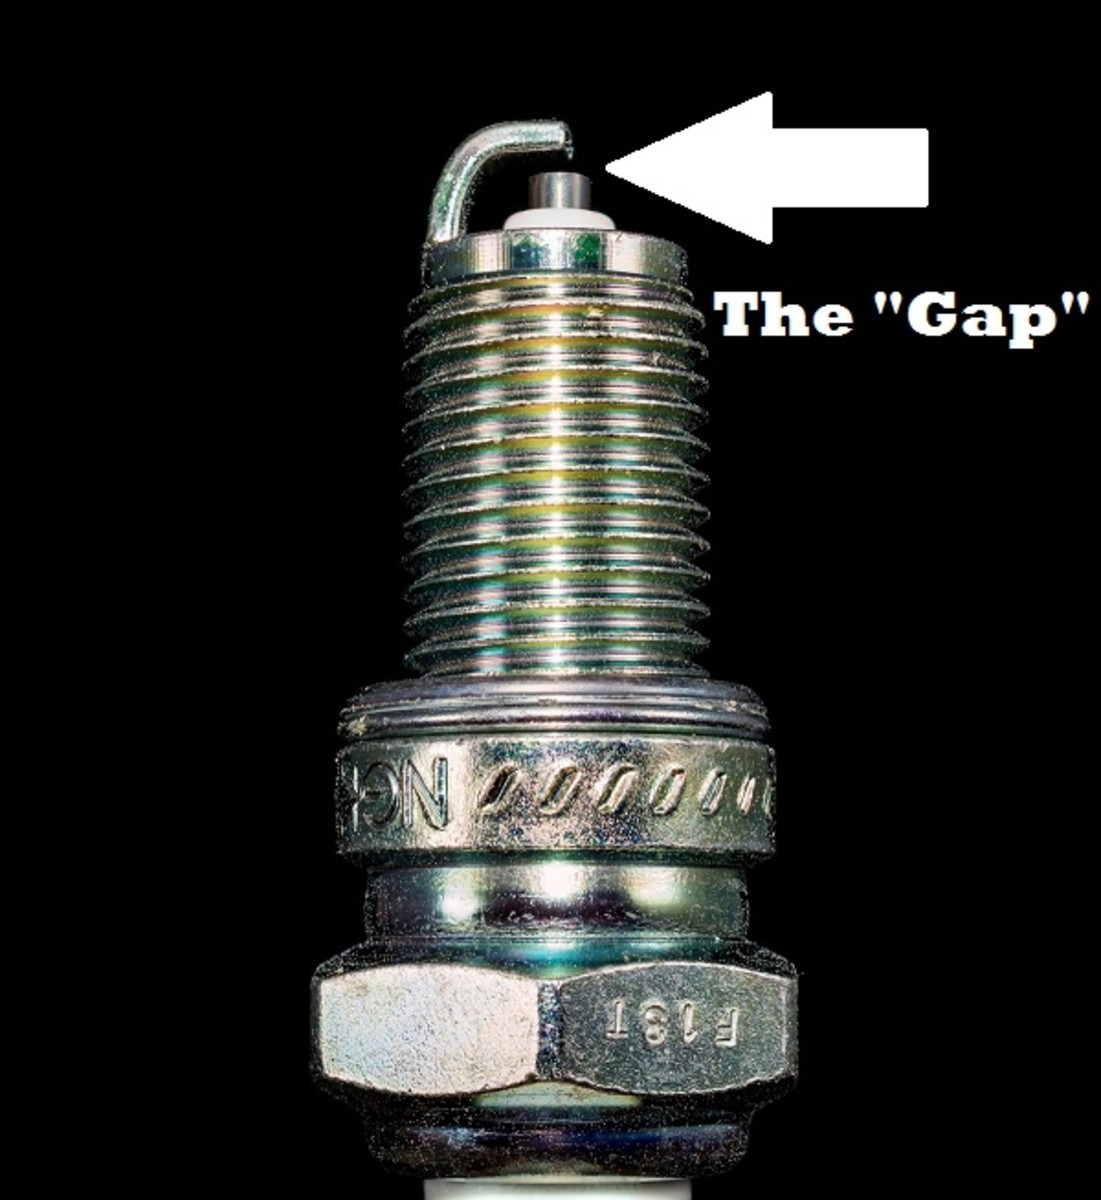 Set the gap of the spark plug by bending the right angled metal piece at the end to the appropriate distance using a gapper tool.